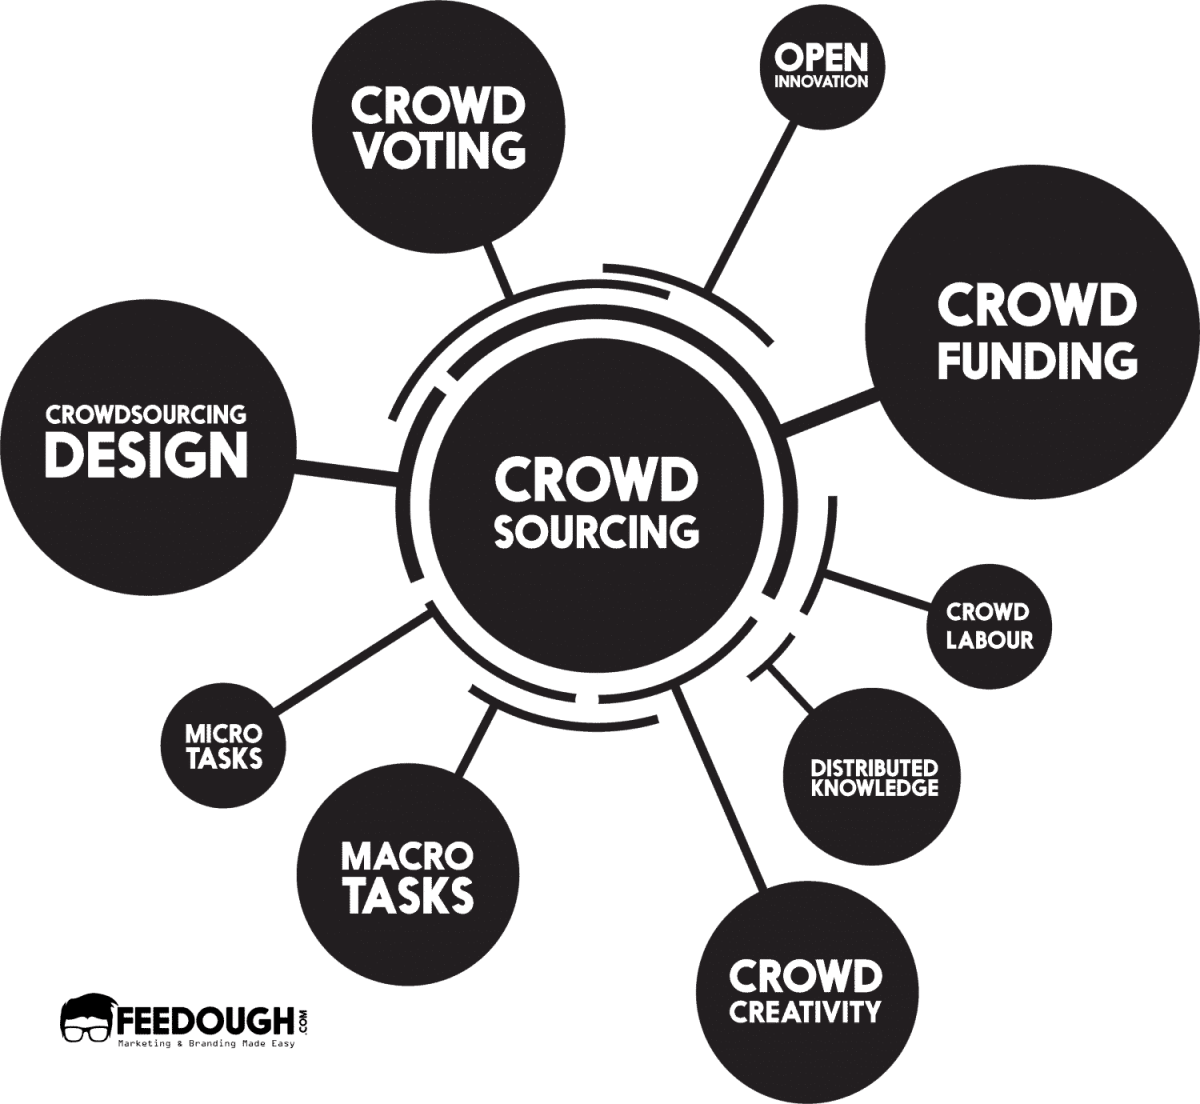 types of CROWDSOURCING